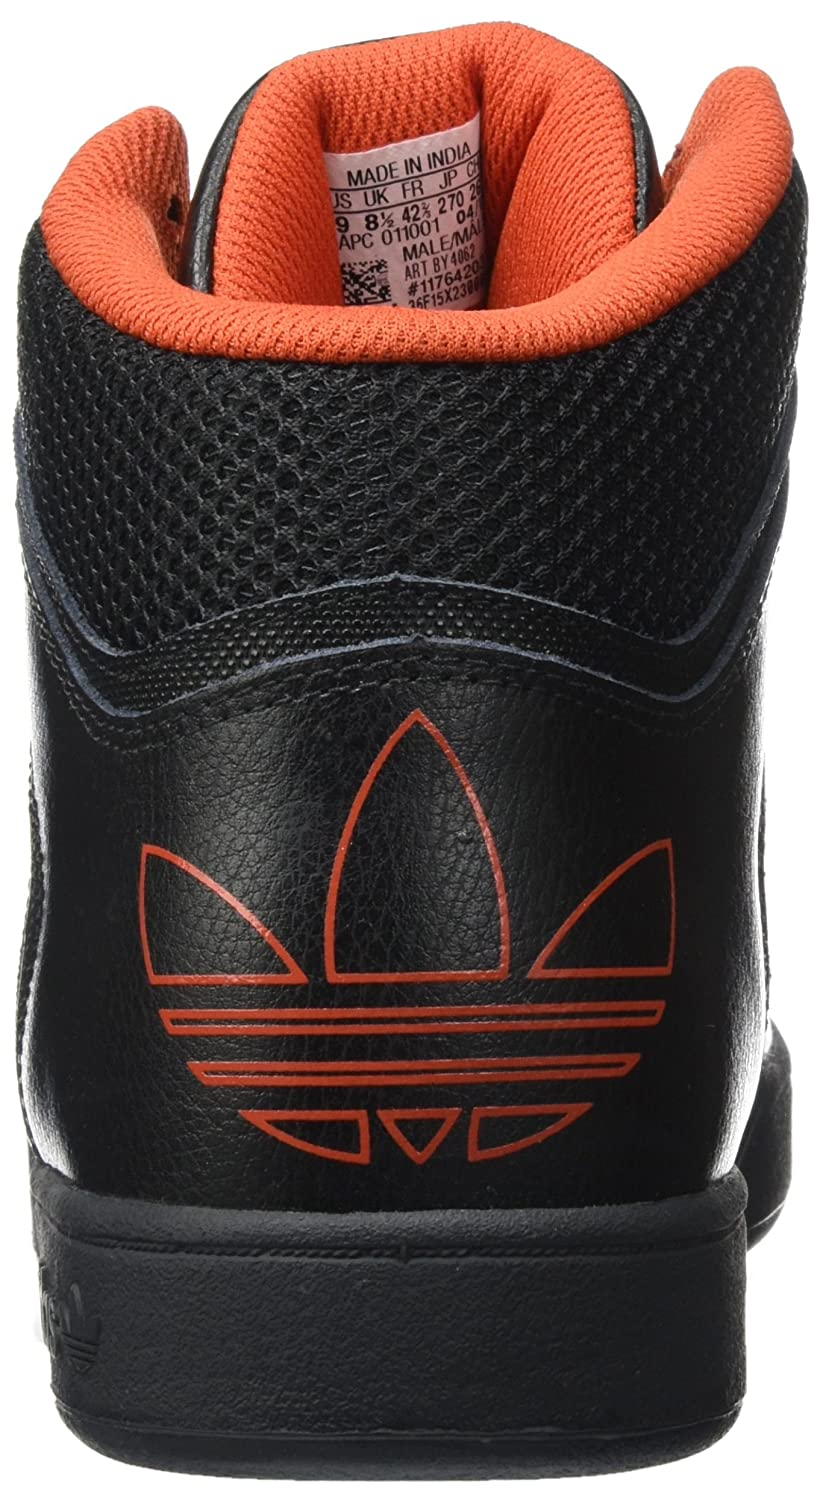 new style 36237 bcbb3 ... adidas Varial Mid, Chaussures de Skate Homme adidas Originals BY4059 ...